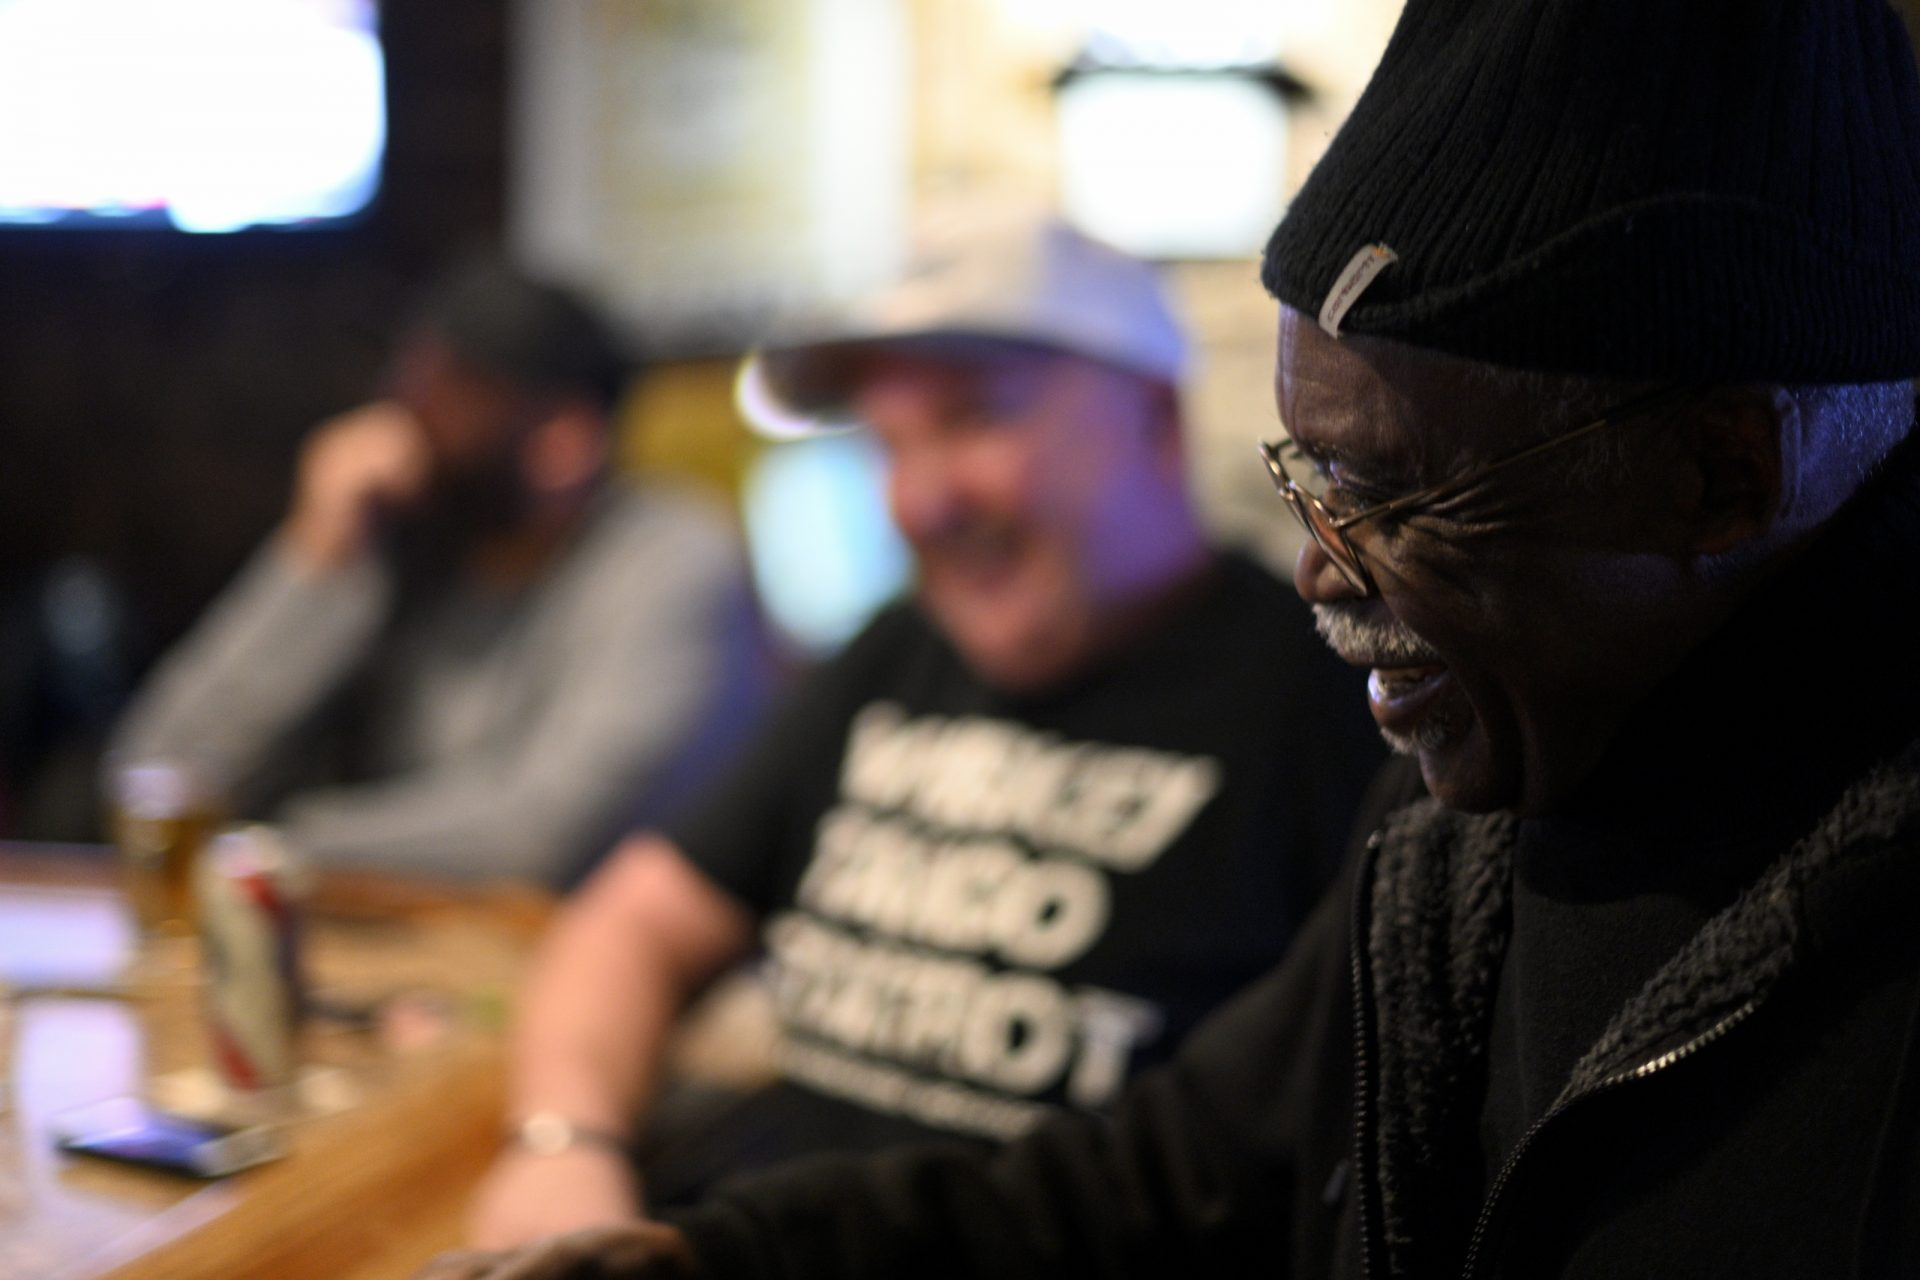 Ronald Stanley Webb, Andy and Stosh's dad, sits at the bar at Deer Lake & West Brunswick Fire Company No. 1, the first place he and his wife felt accepted as a couple in Schuylkill after marrying in the 1960s.